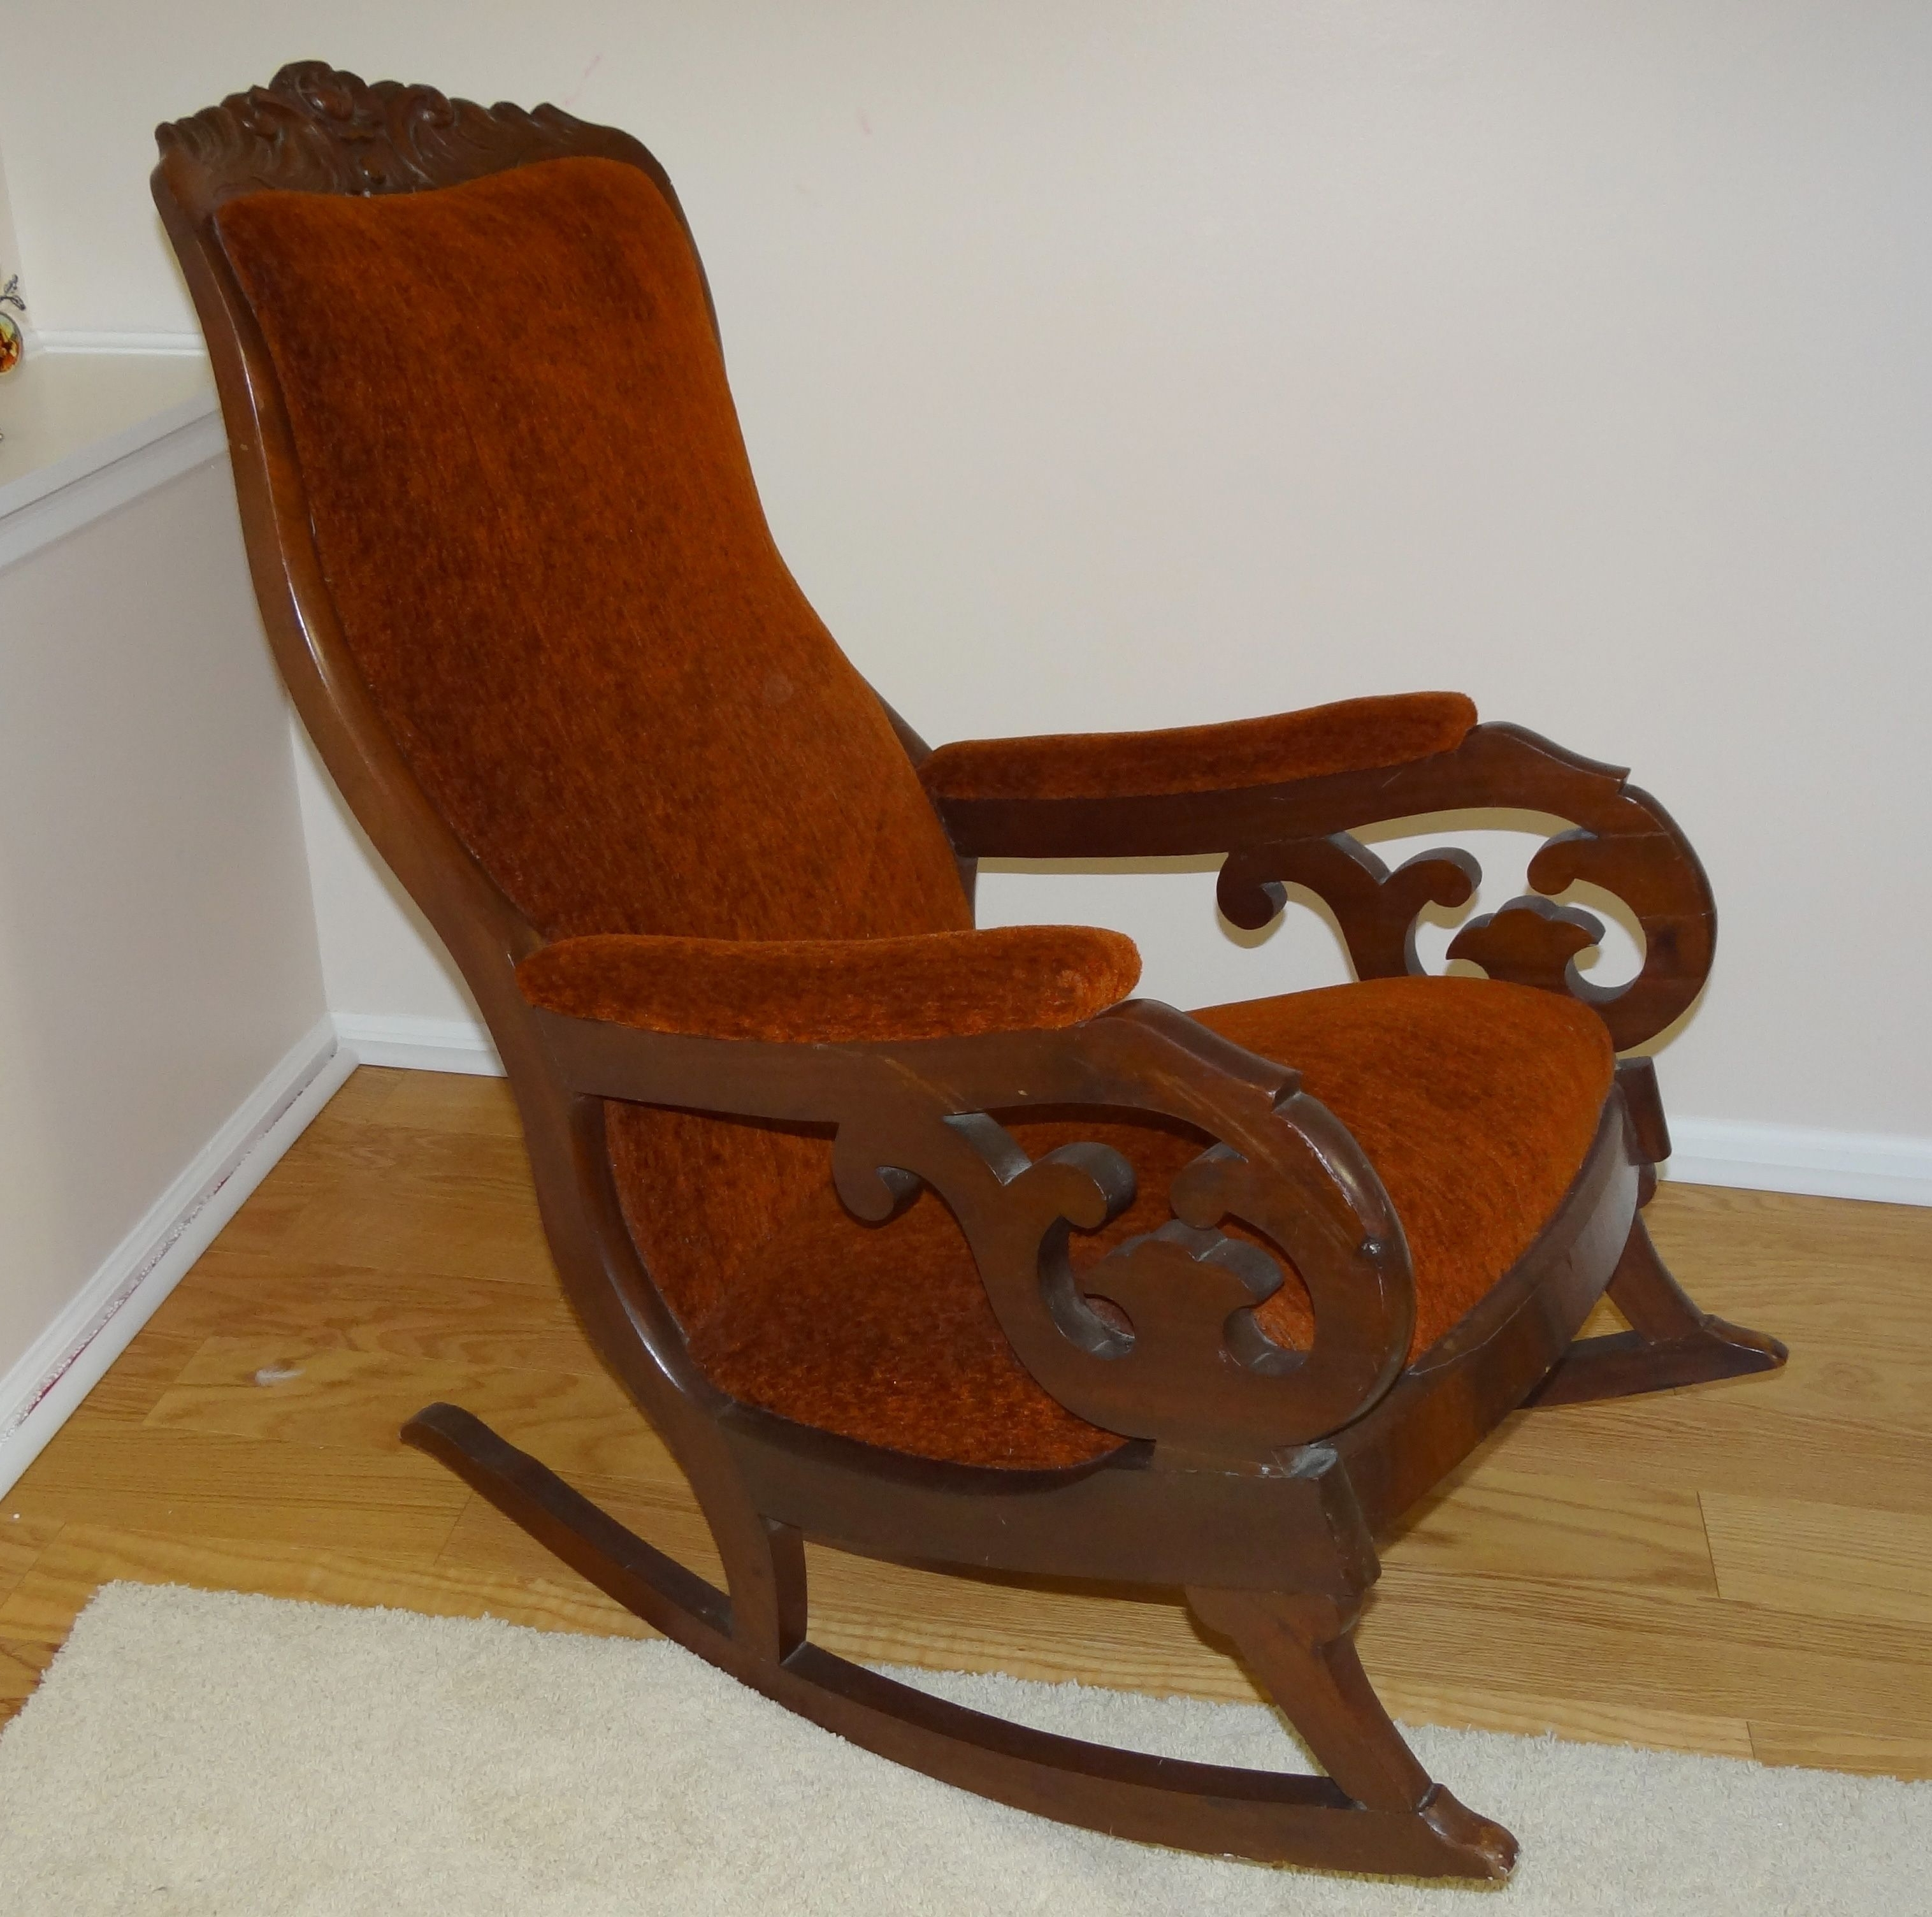 Find Great Deals On Ebay For Vintage Rocking Chair In Antique Chairs For Well Known Rocking Chairs At Sam's Club (View 9 of 20)